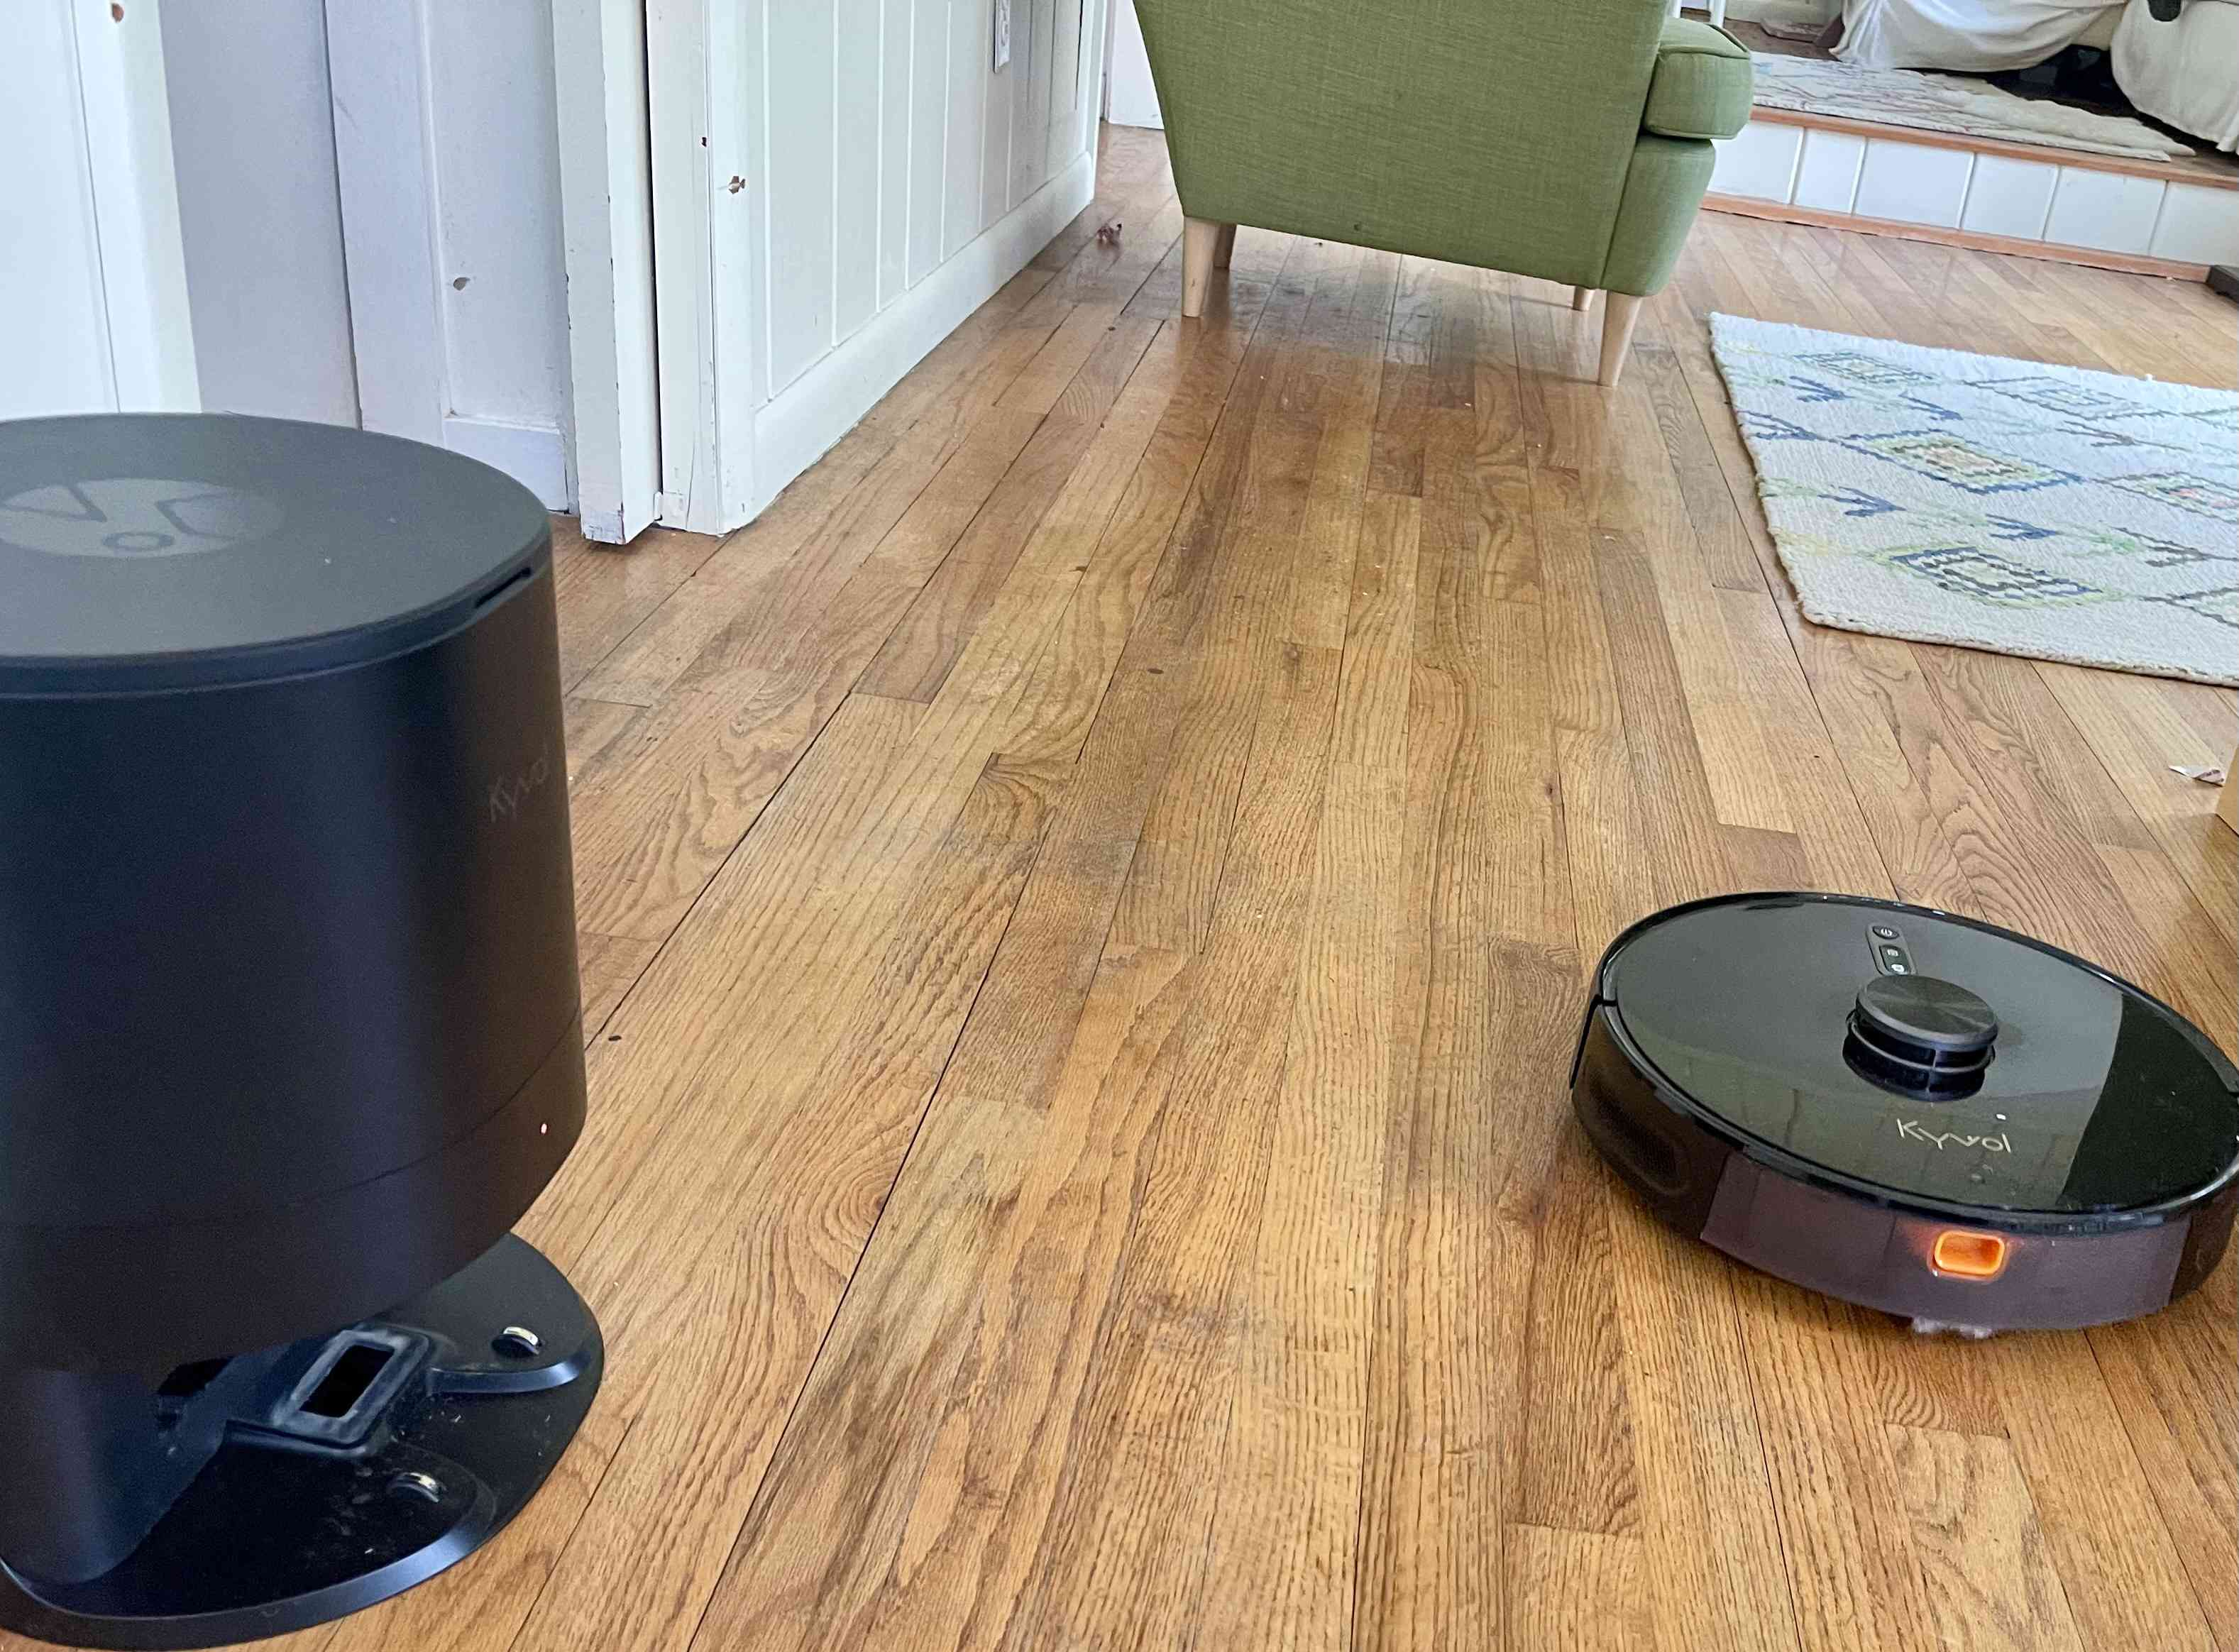 Cybovac S31 Cleaning Robot separated from its dock and navigating a room